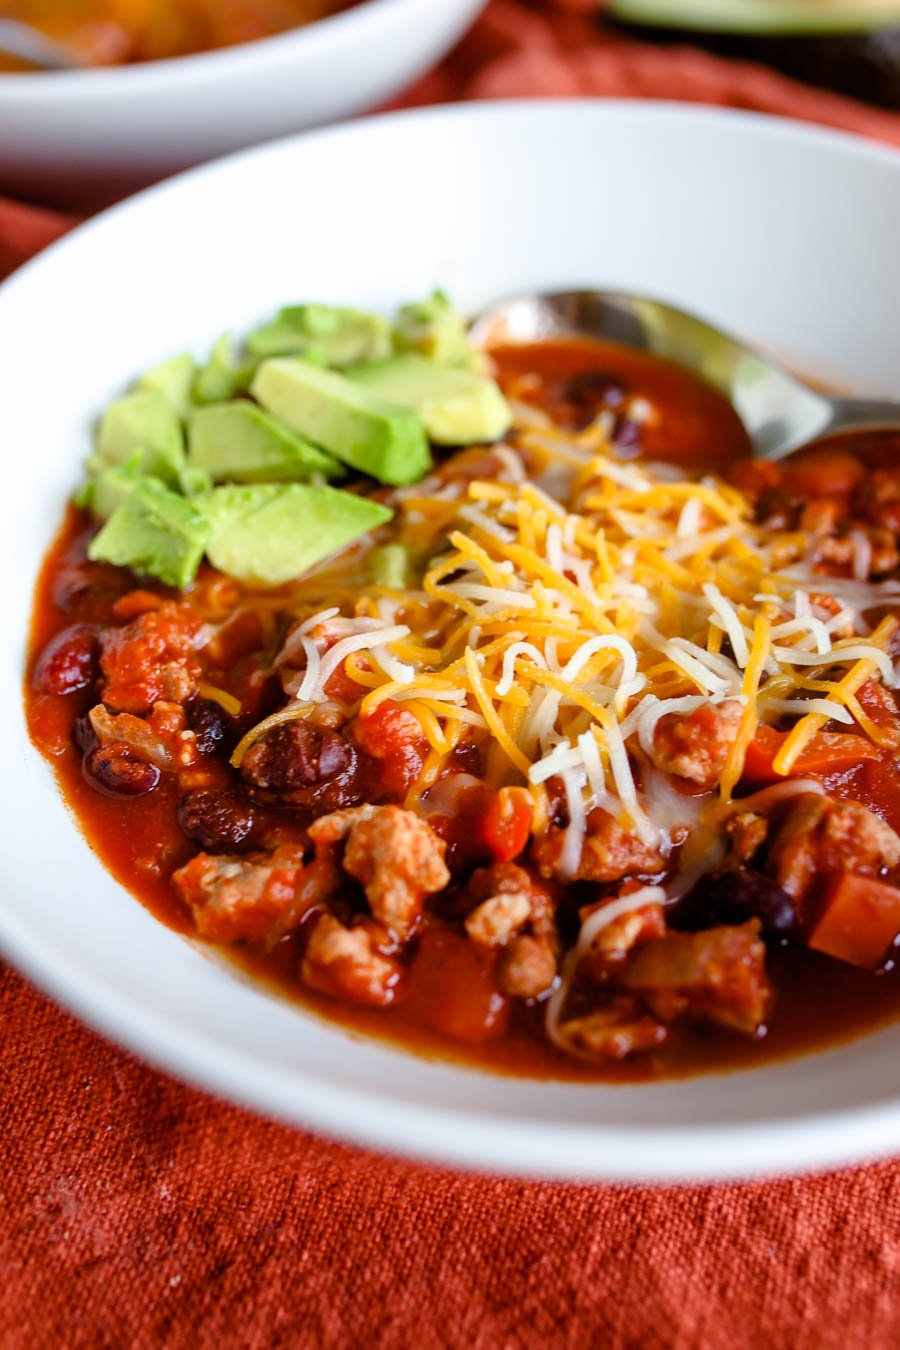 Slow Cooker Turkey Chili [Cooking Video]